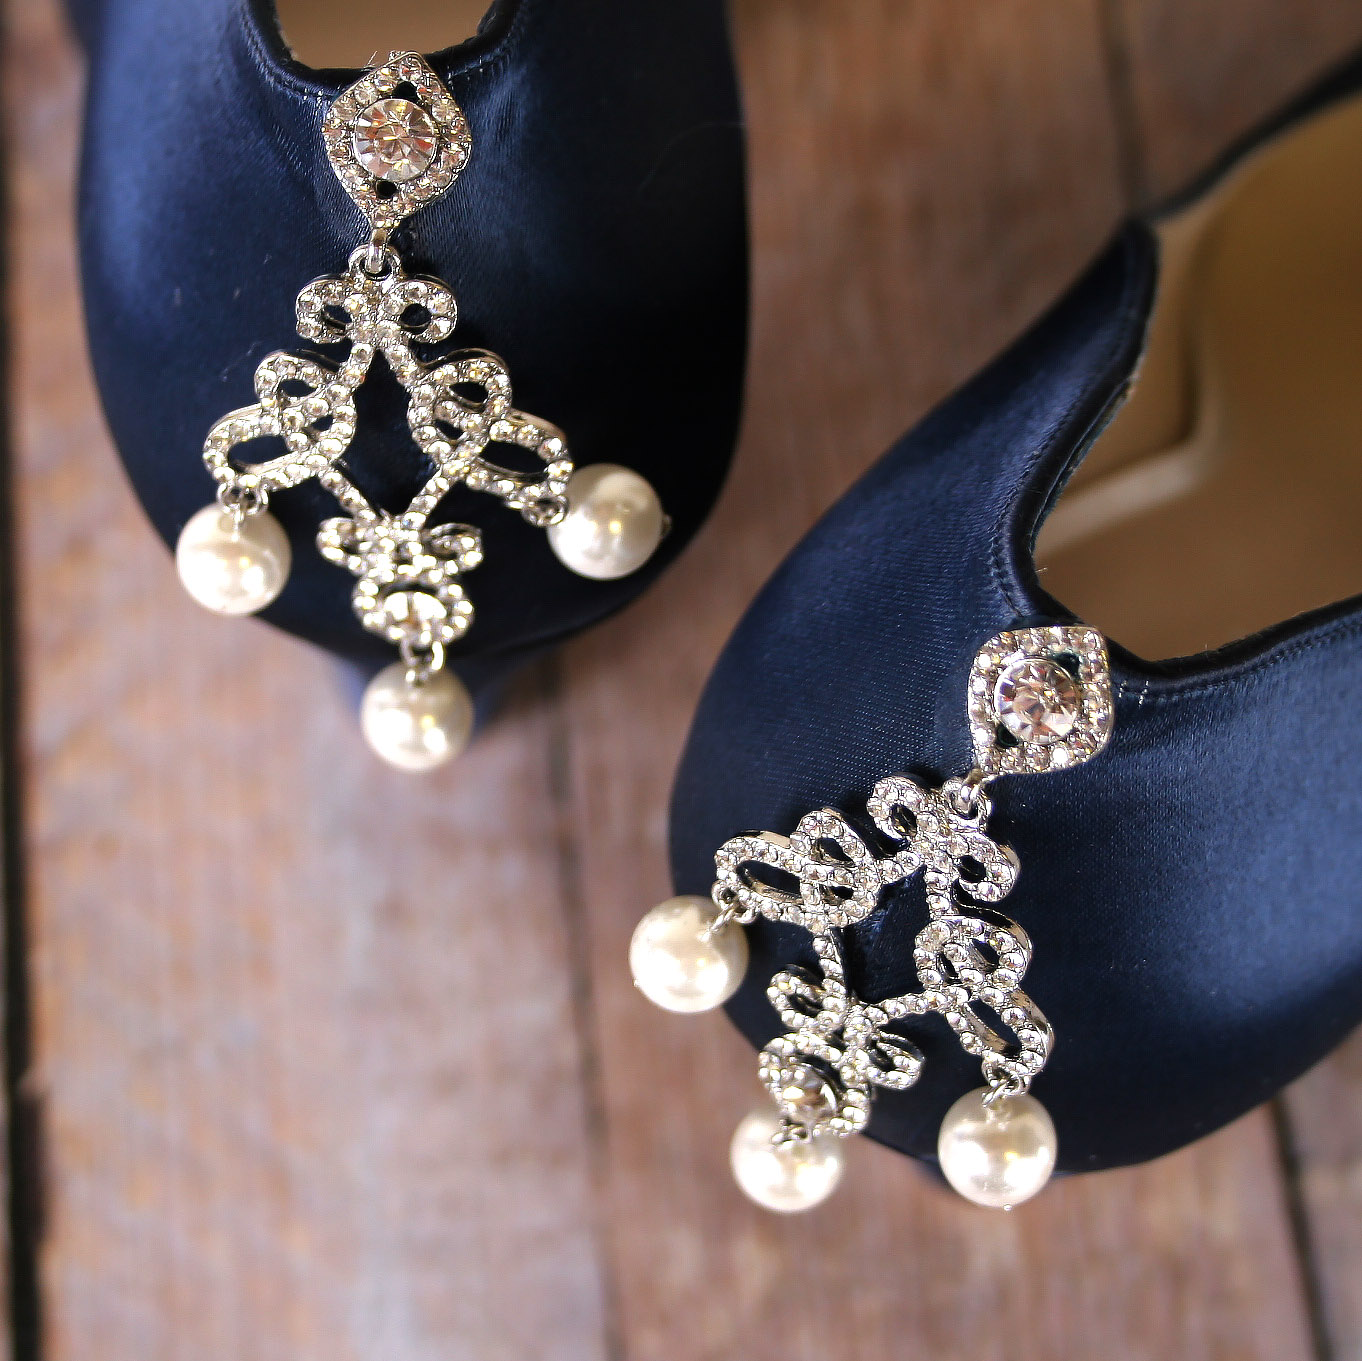 Navy Blue Something Blue Wedding Shoes with Sparkly Silver Crystal and Ivory Pearl Chandelier Adornment on Block Heel Custom Wedding Shoes by Ellie Wren